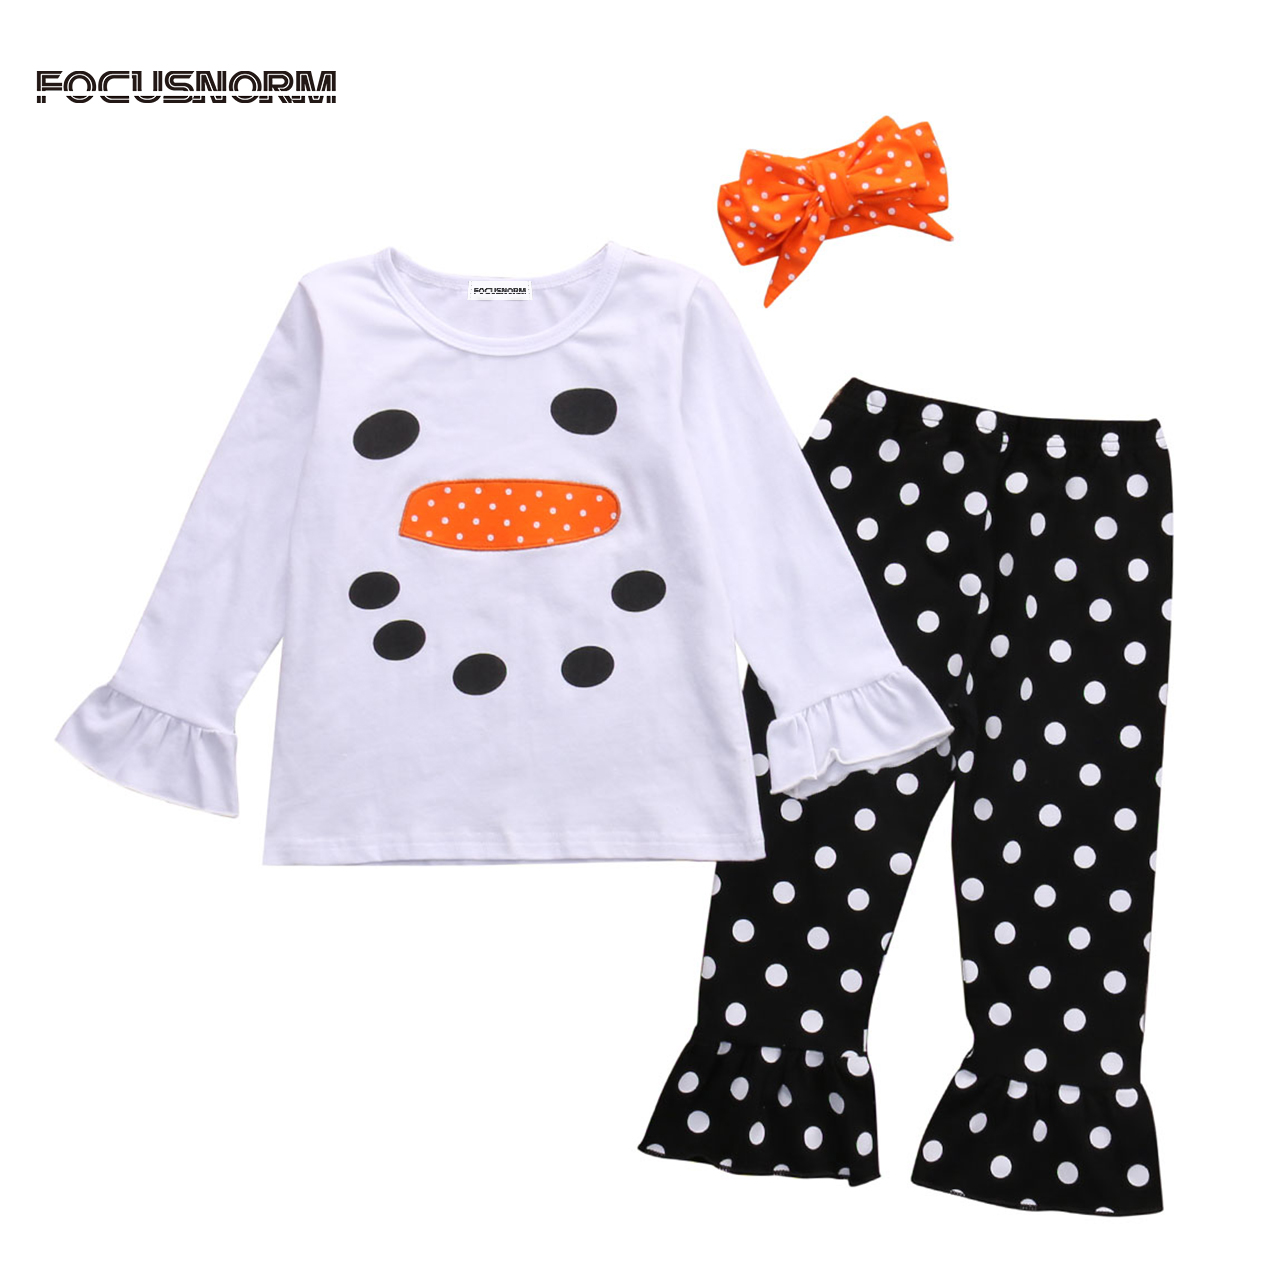 Toddler Kids Girls Clothes Cotton Long Sleeves T-Shirt Top+Pants +Headband Christmas Snowman Ruffle Polka Dot Outfits все цены